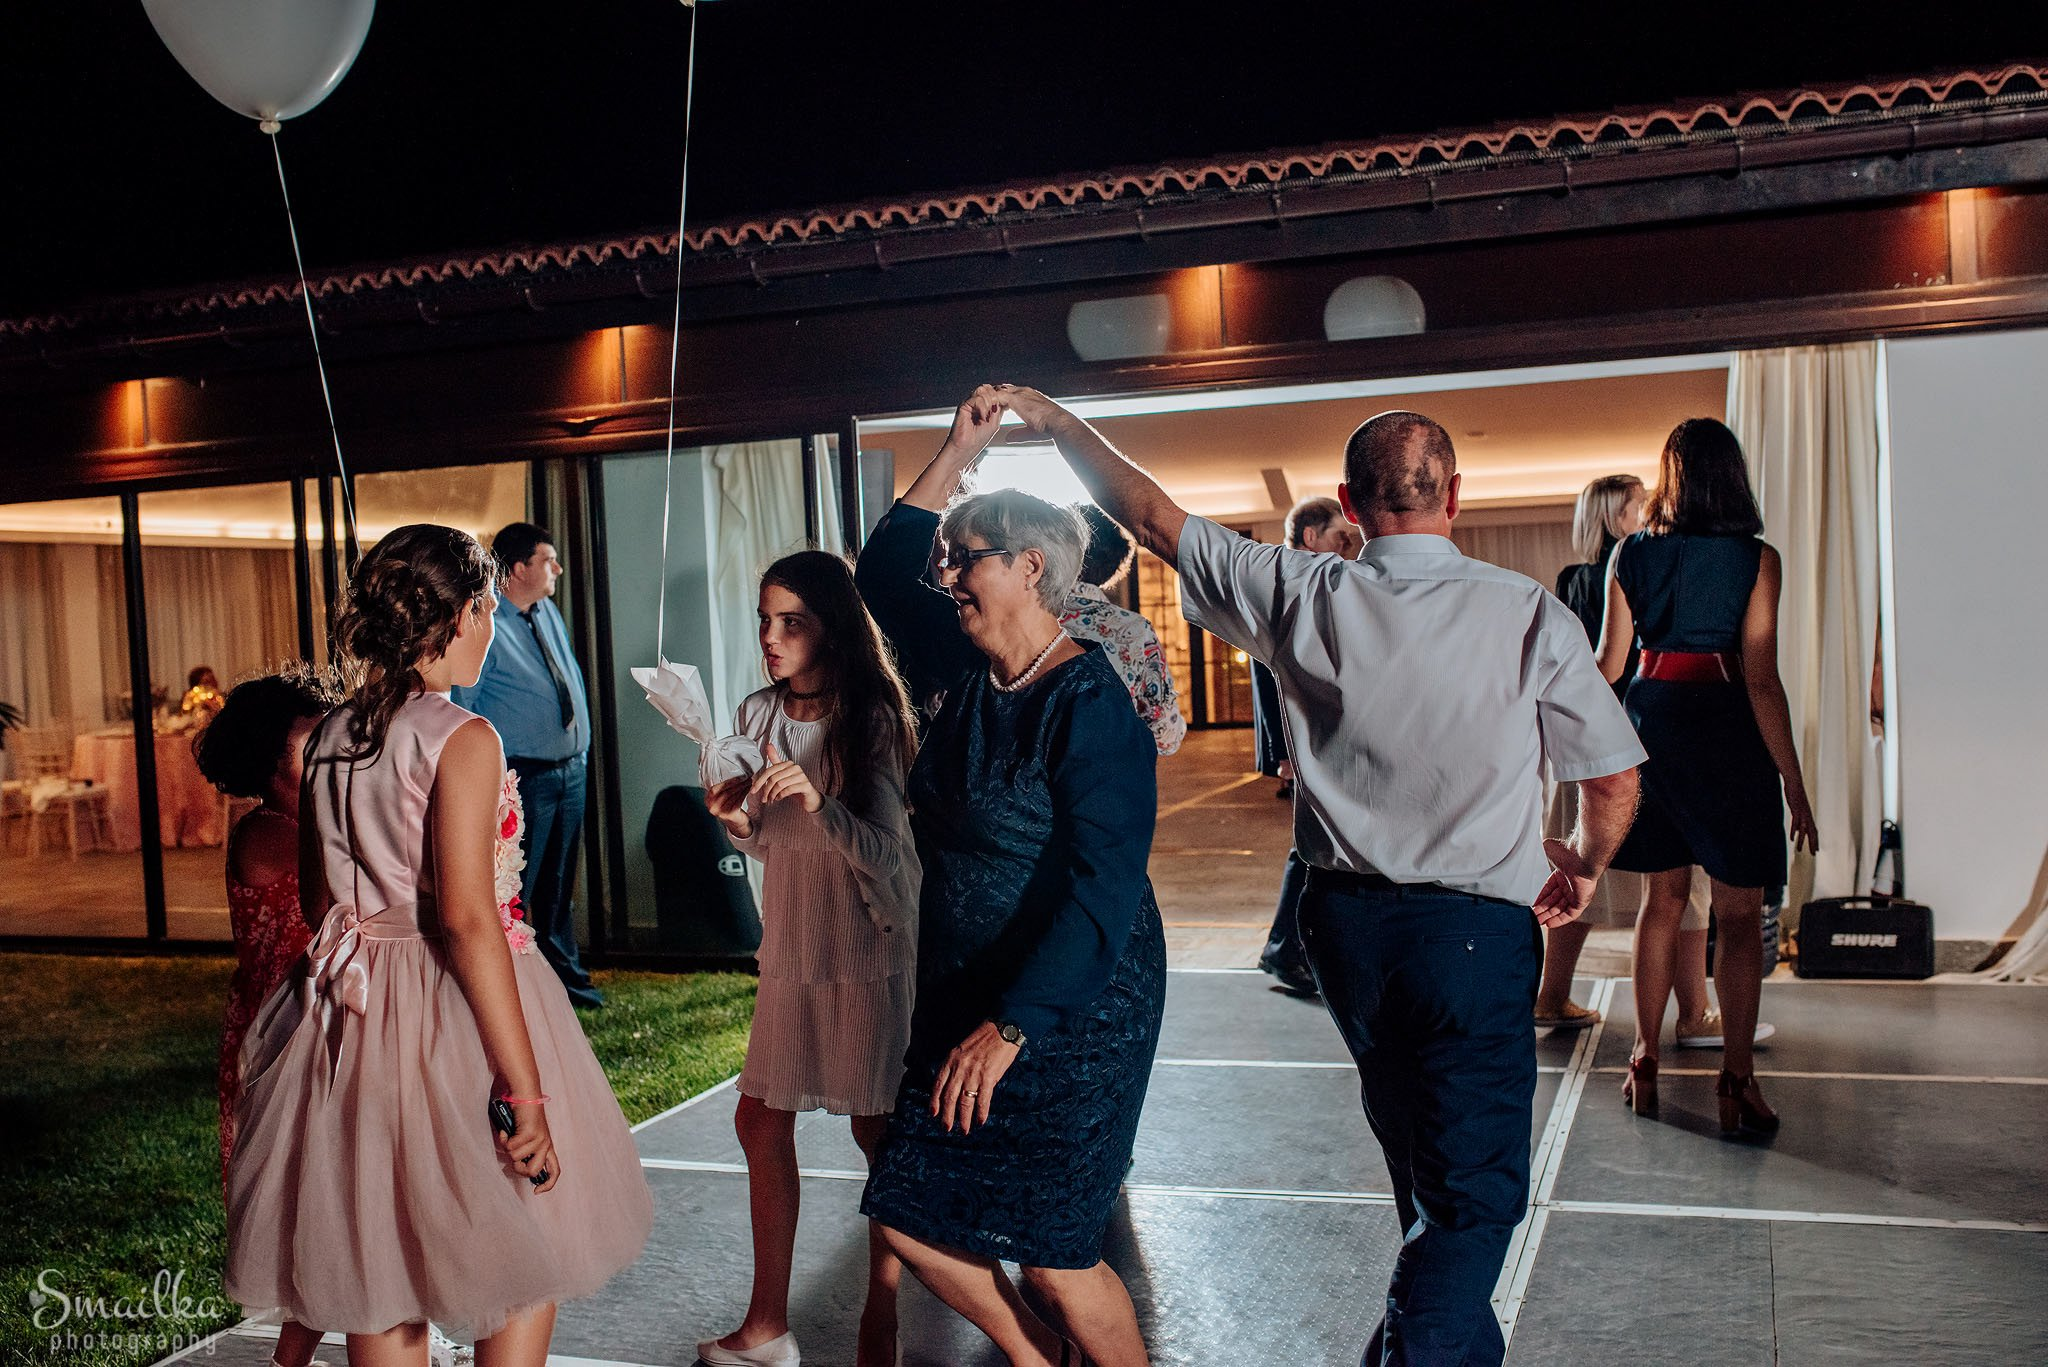 Guests on wedding dancing outside the restaurant at Black Sea Rama